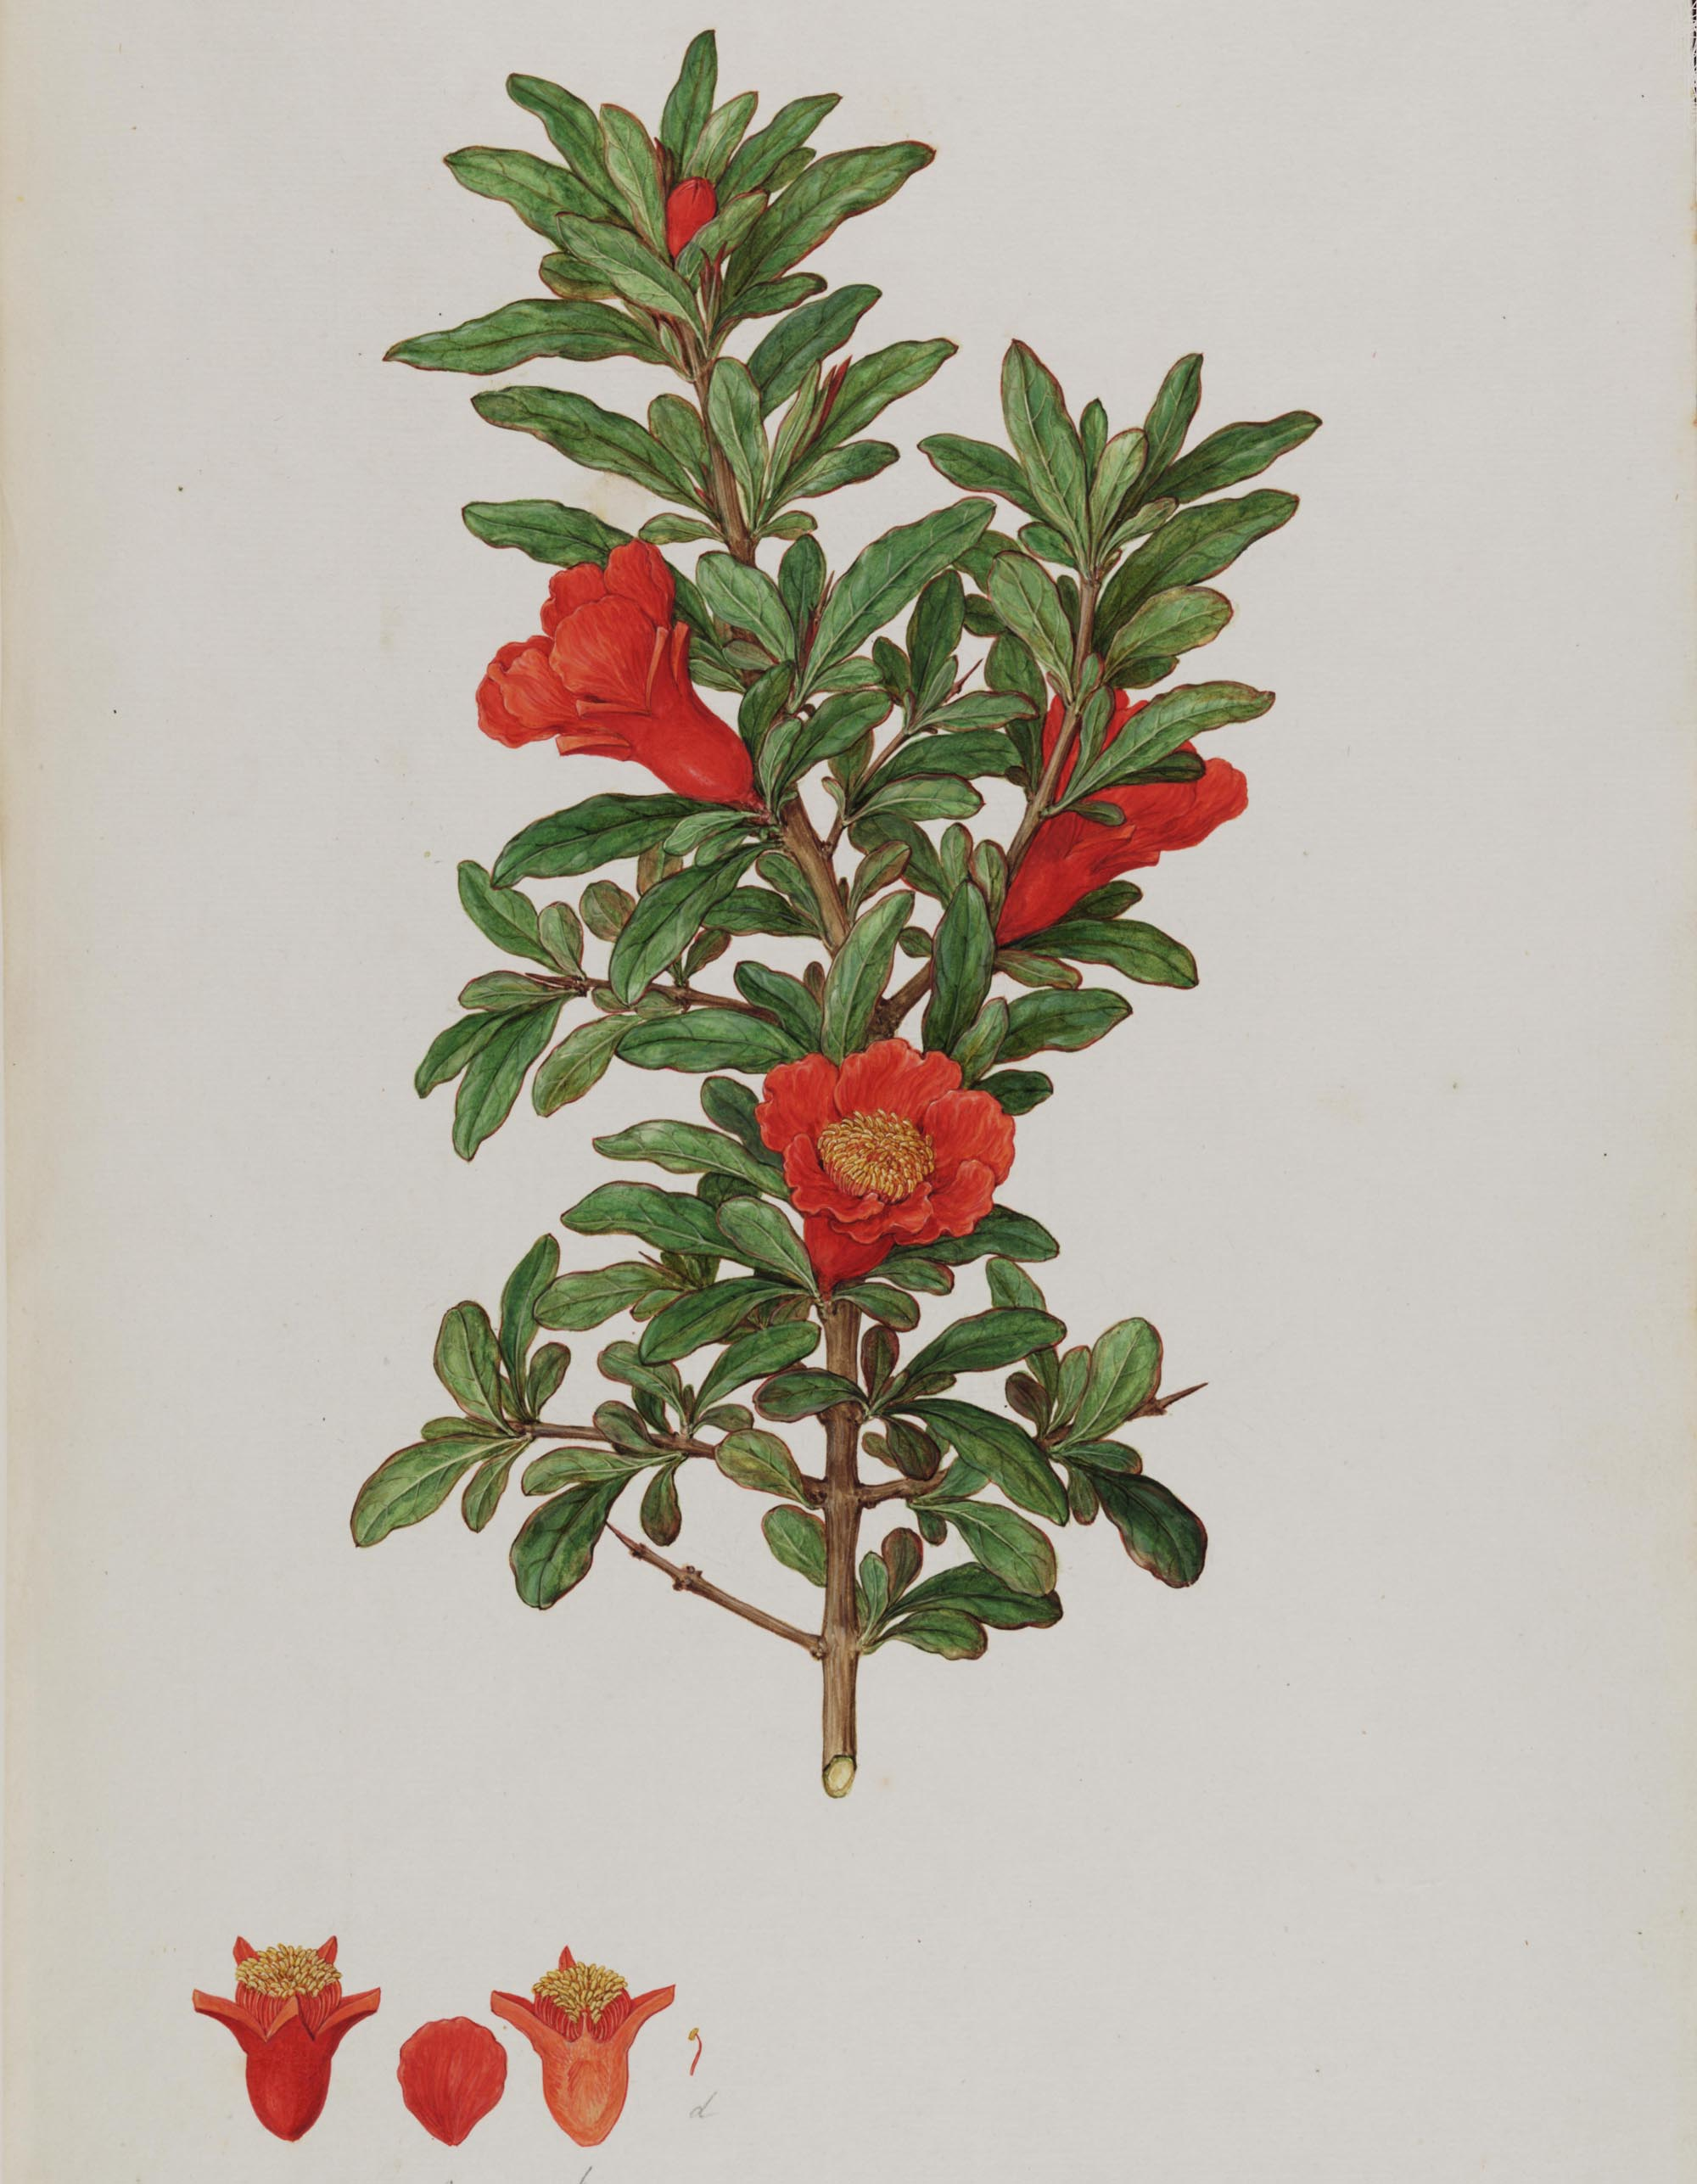 a drawing of a green-leaved plant with red tubular leaves